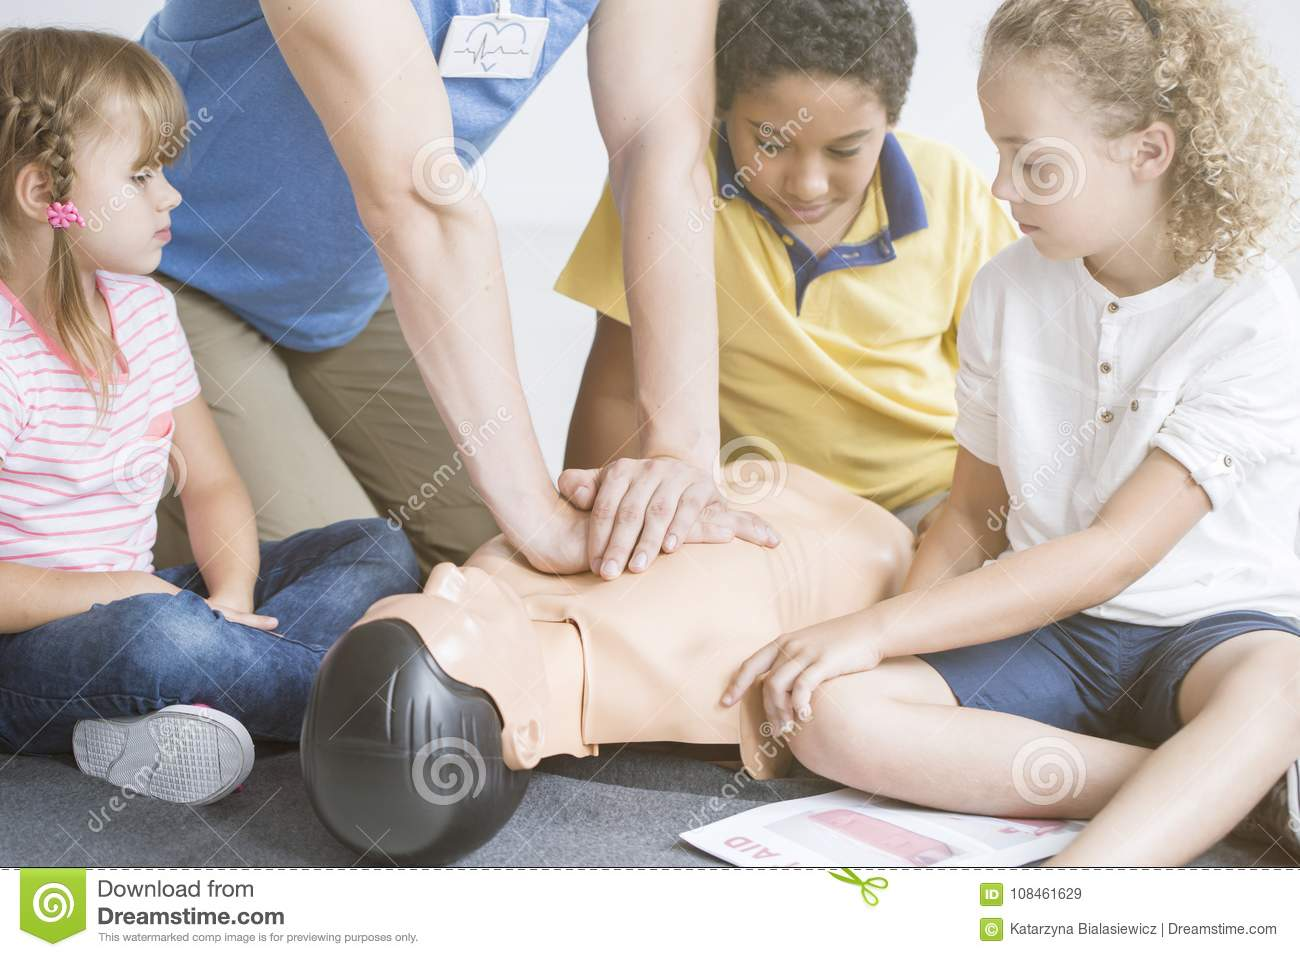 Paramedic showing children chest compressions